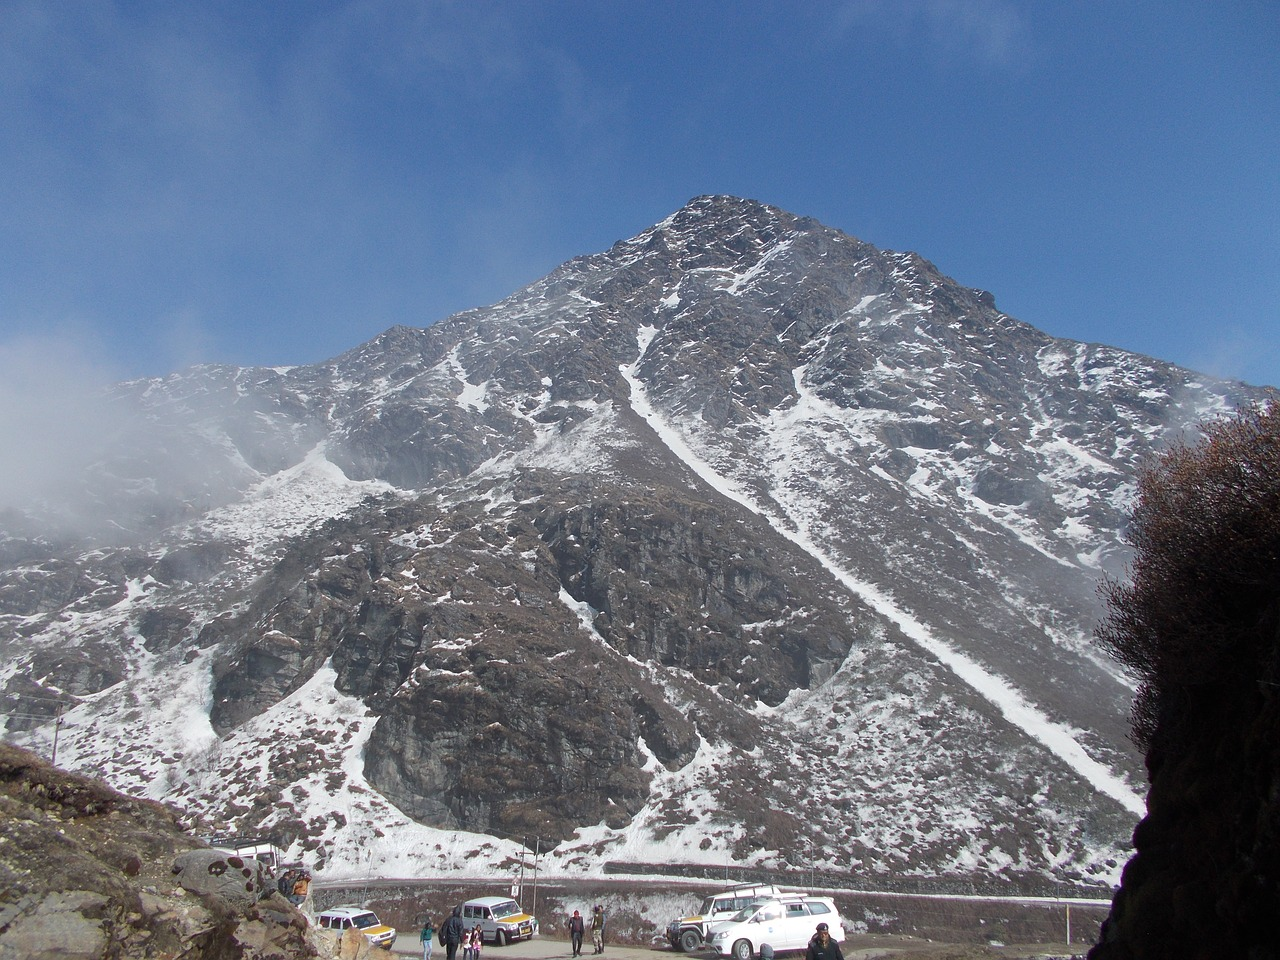 White snowy mountain in Gangtok